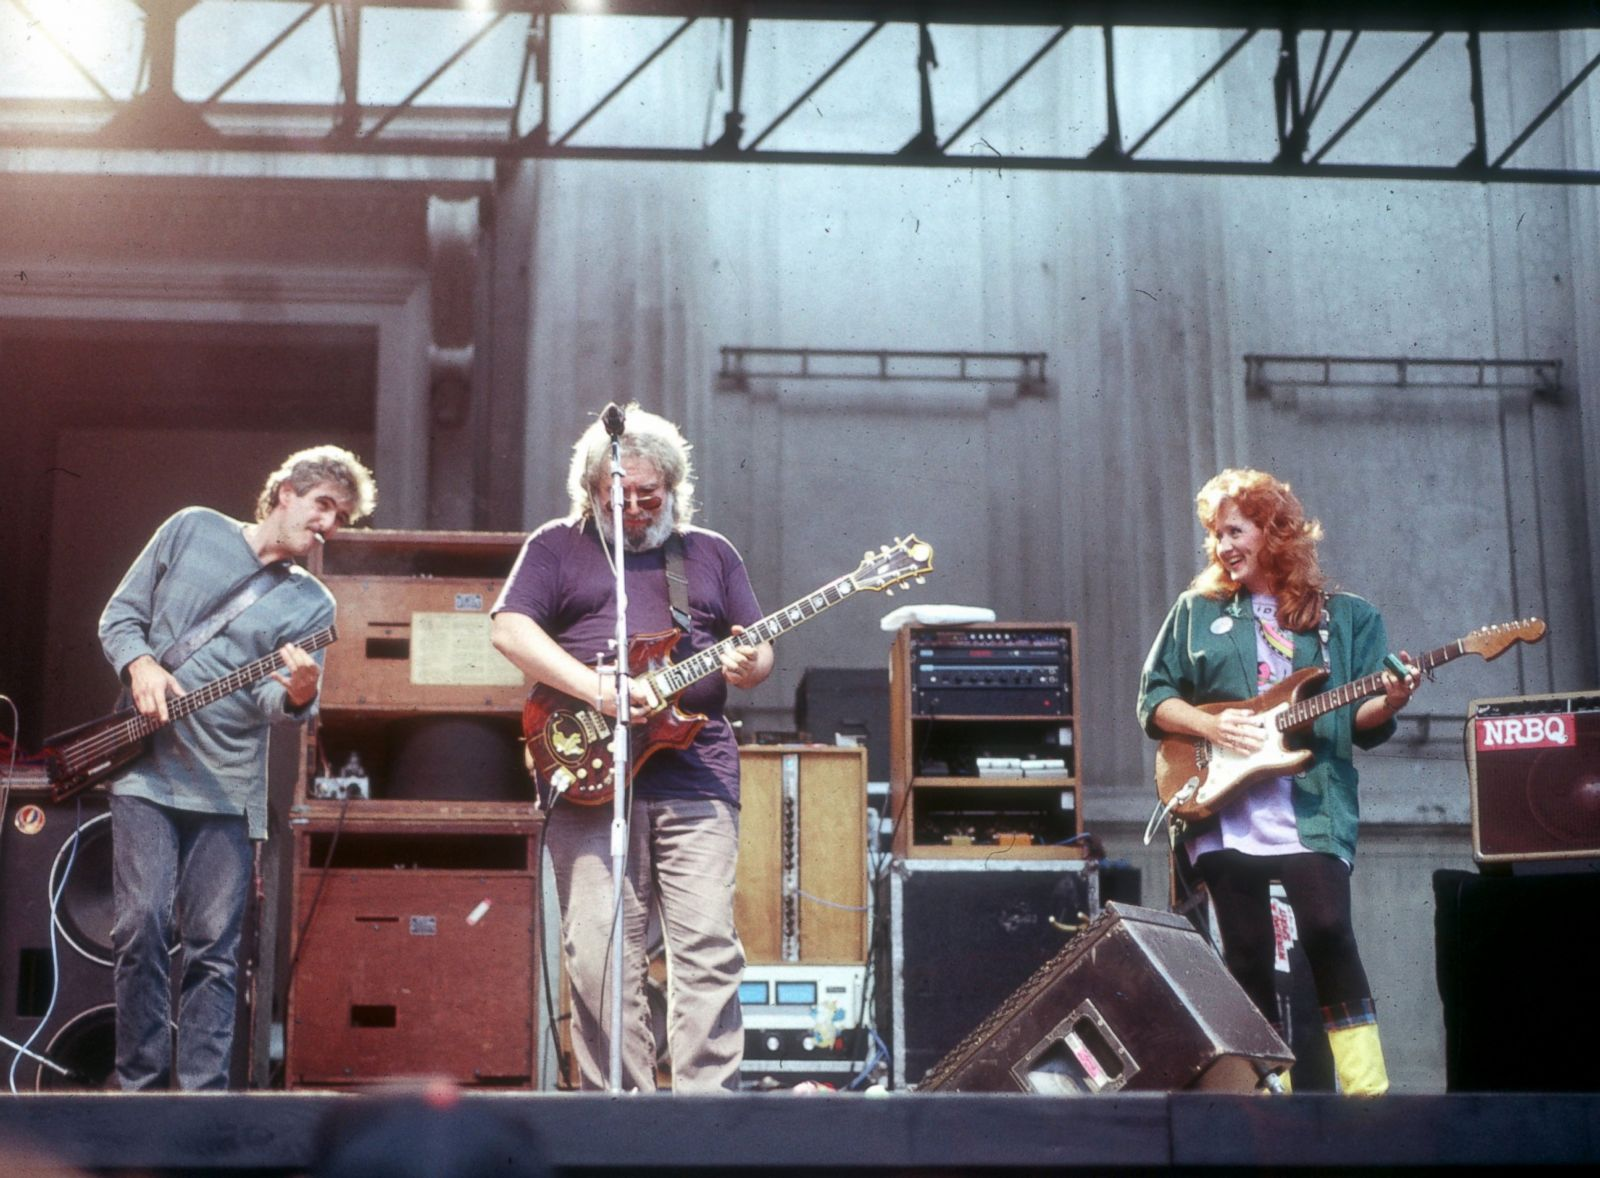 Photos of the grateful dead The Grateful Dead: Photos Through the Years m